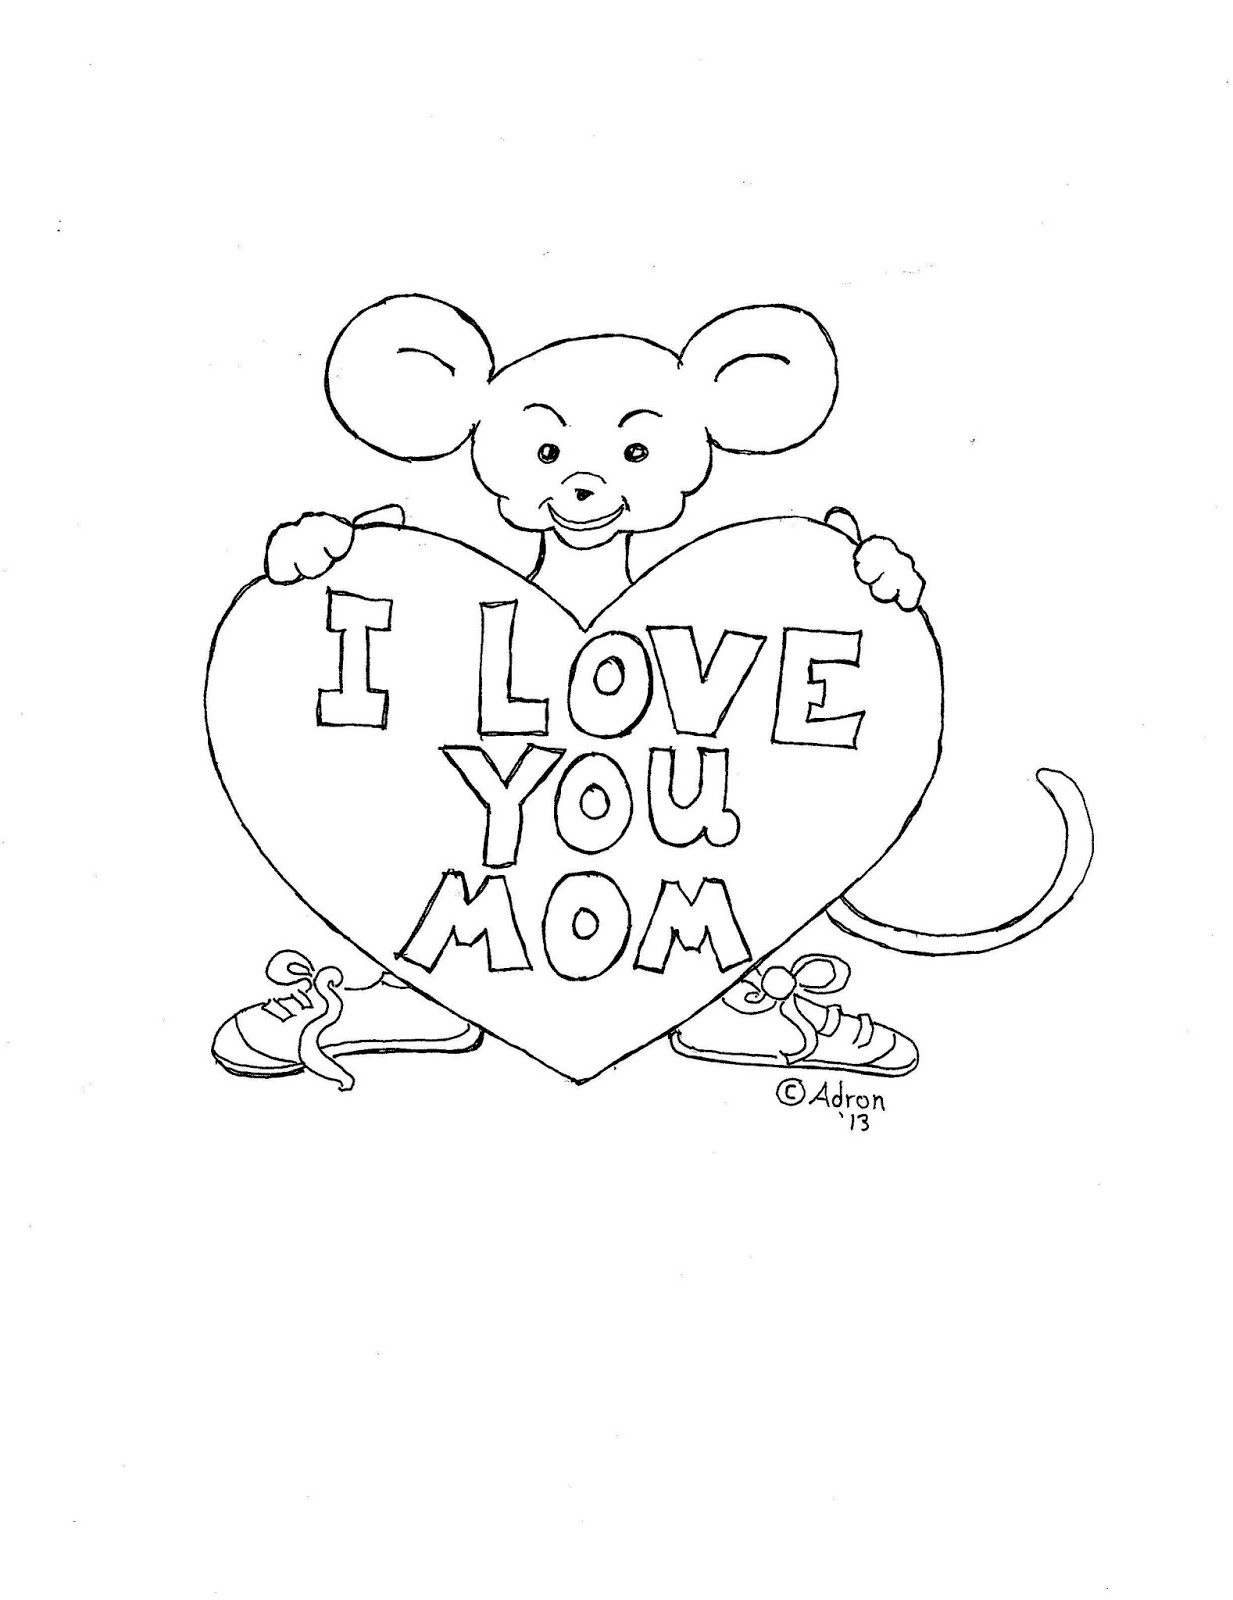 Coloring Pages For Kids By Mr Adron Mother Day Print